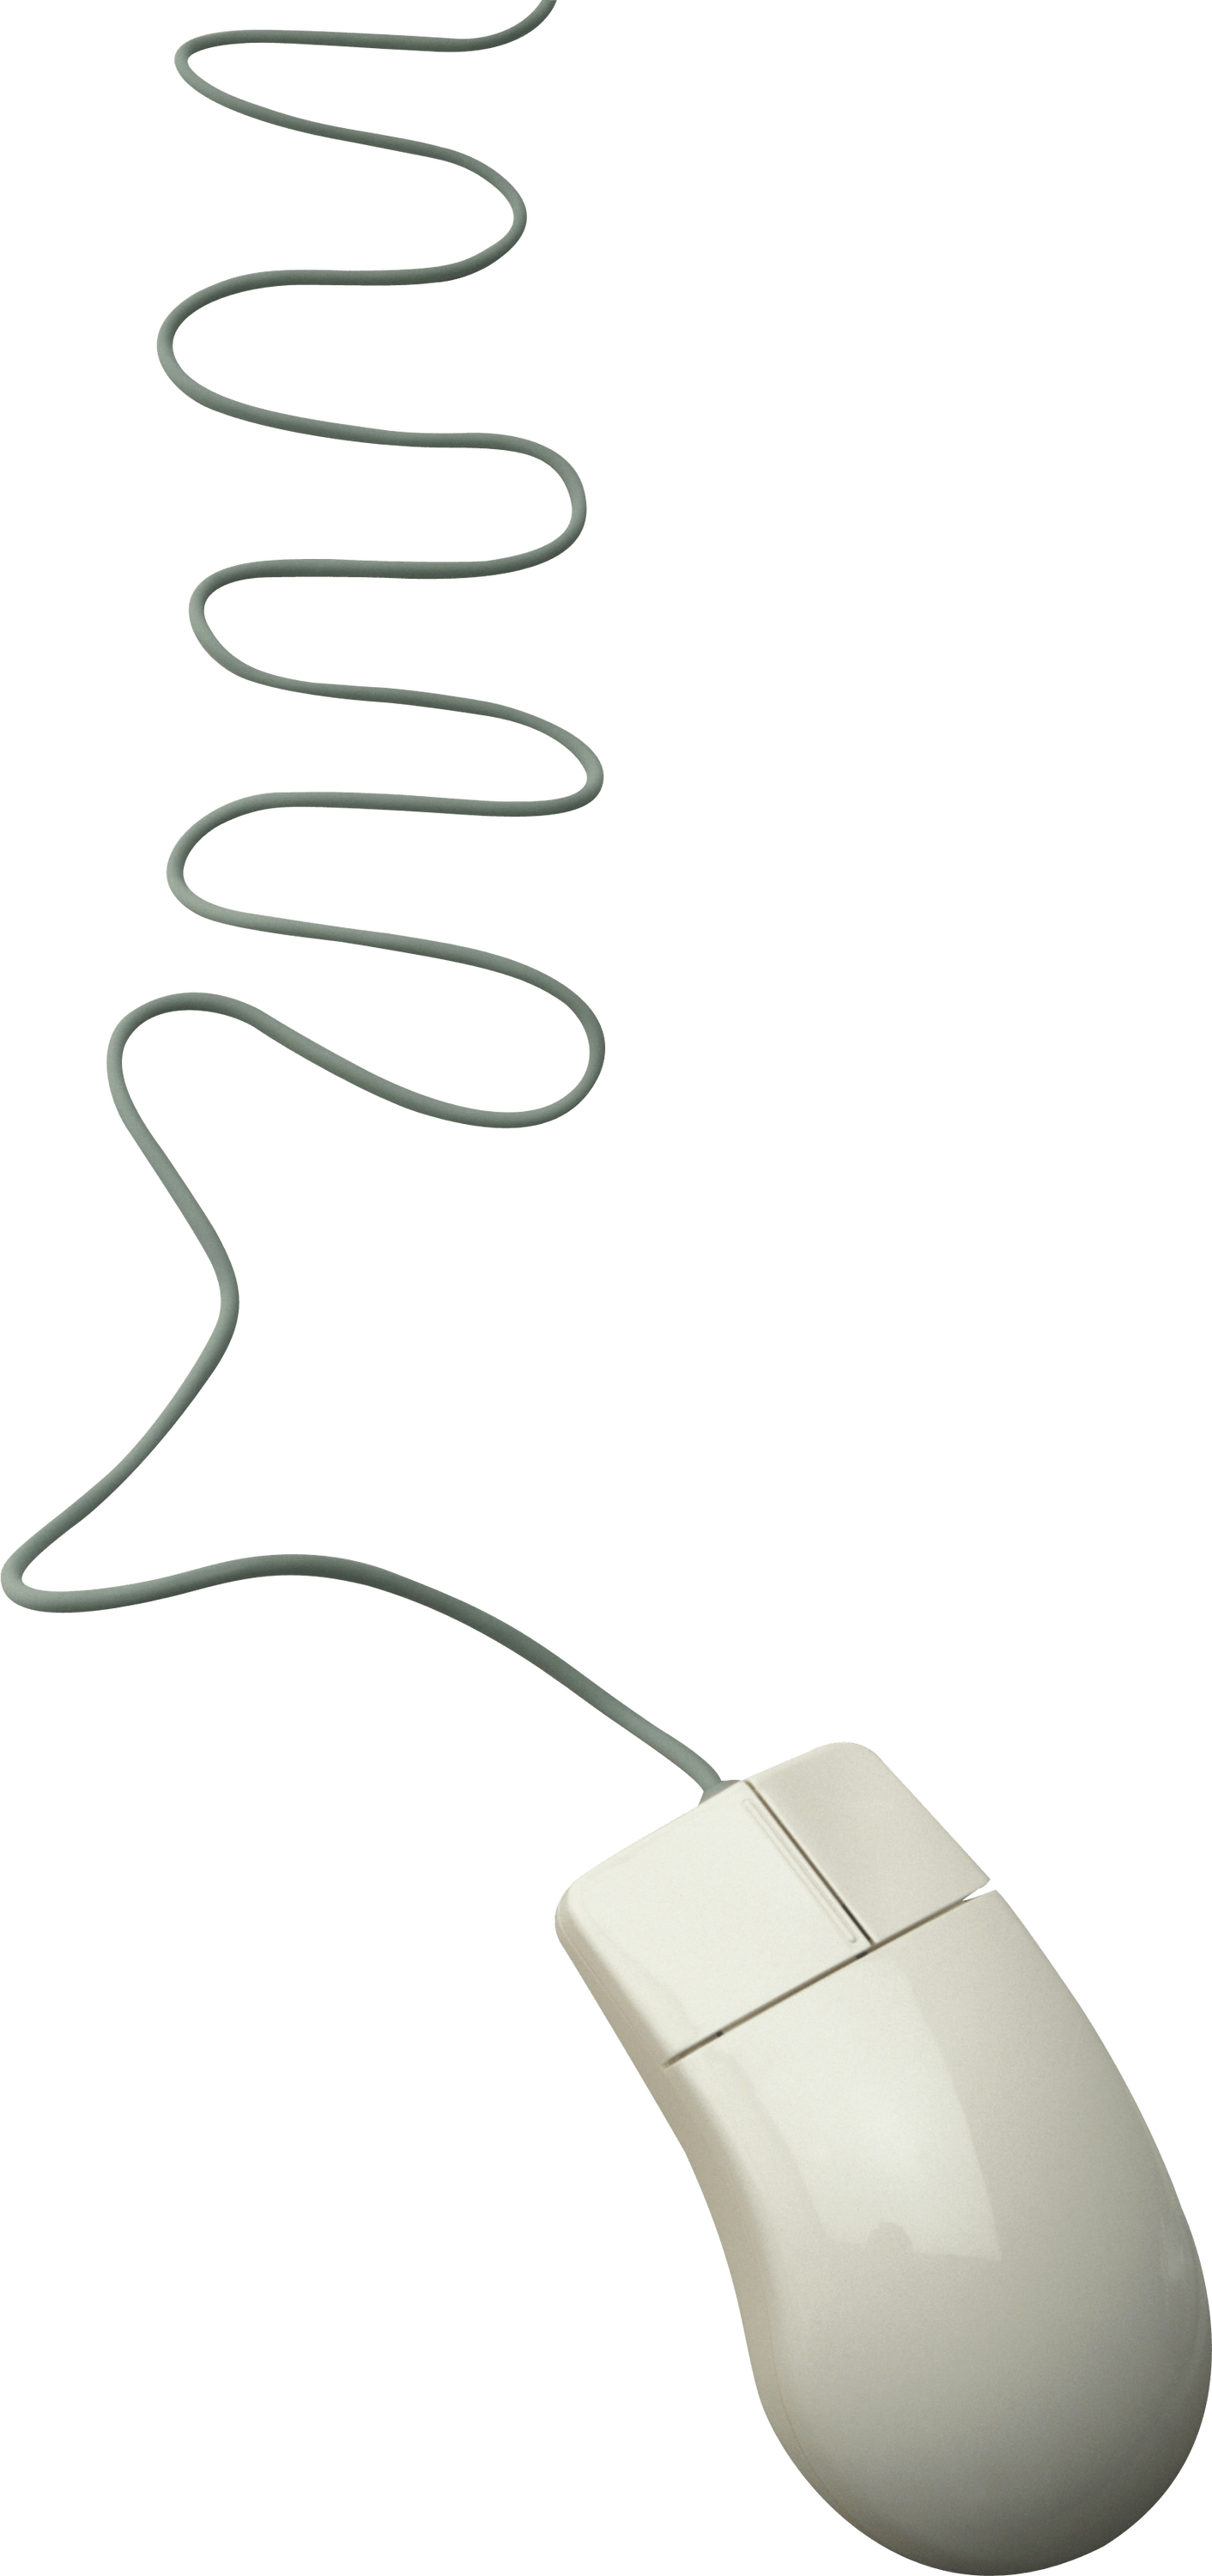 Computer Mouse Long Cord transparent PNG.